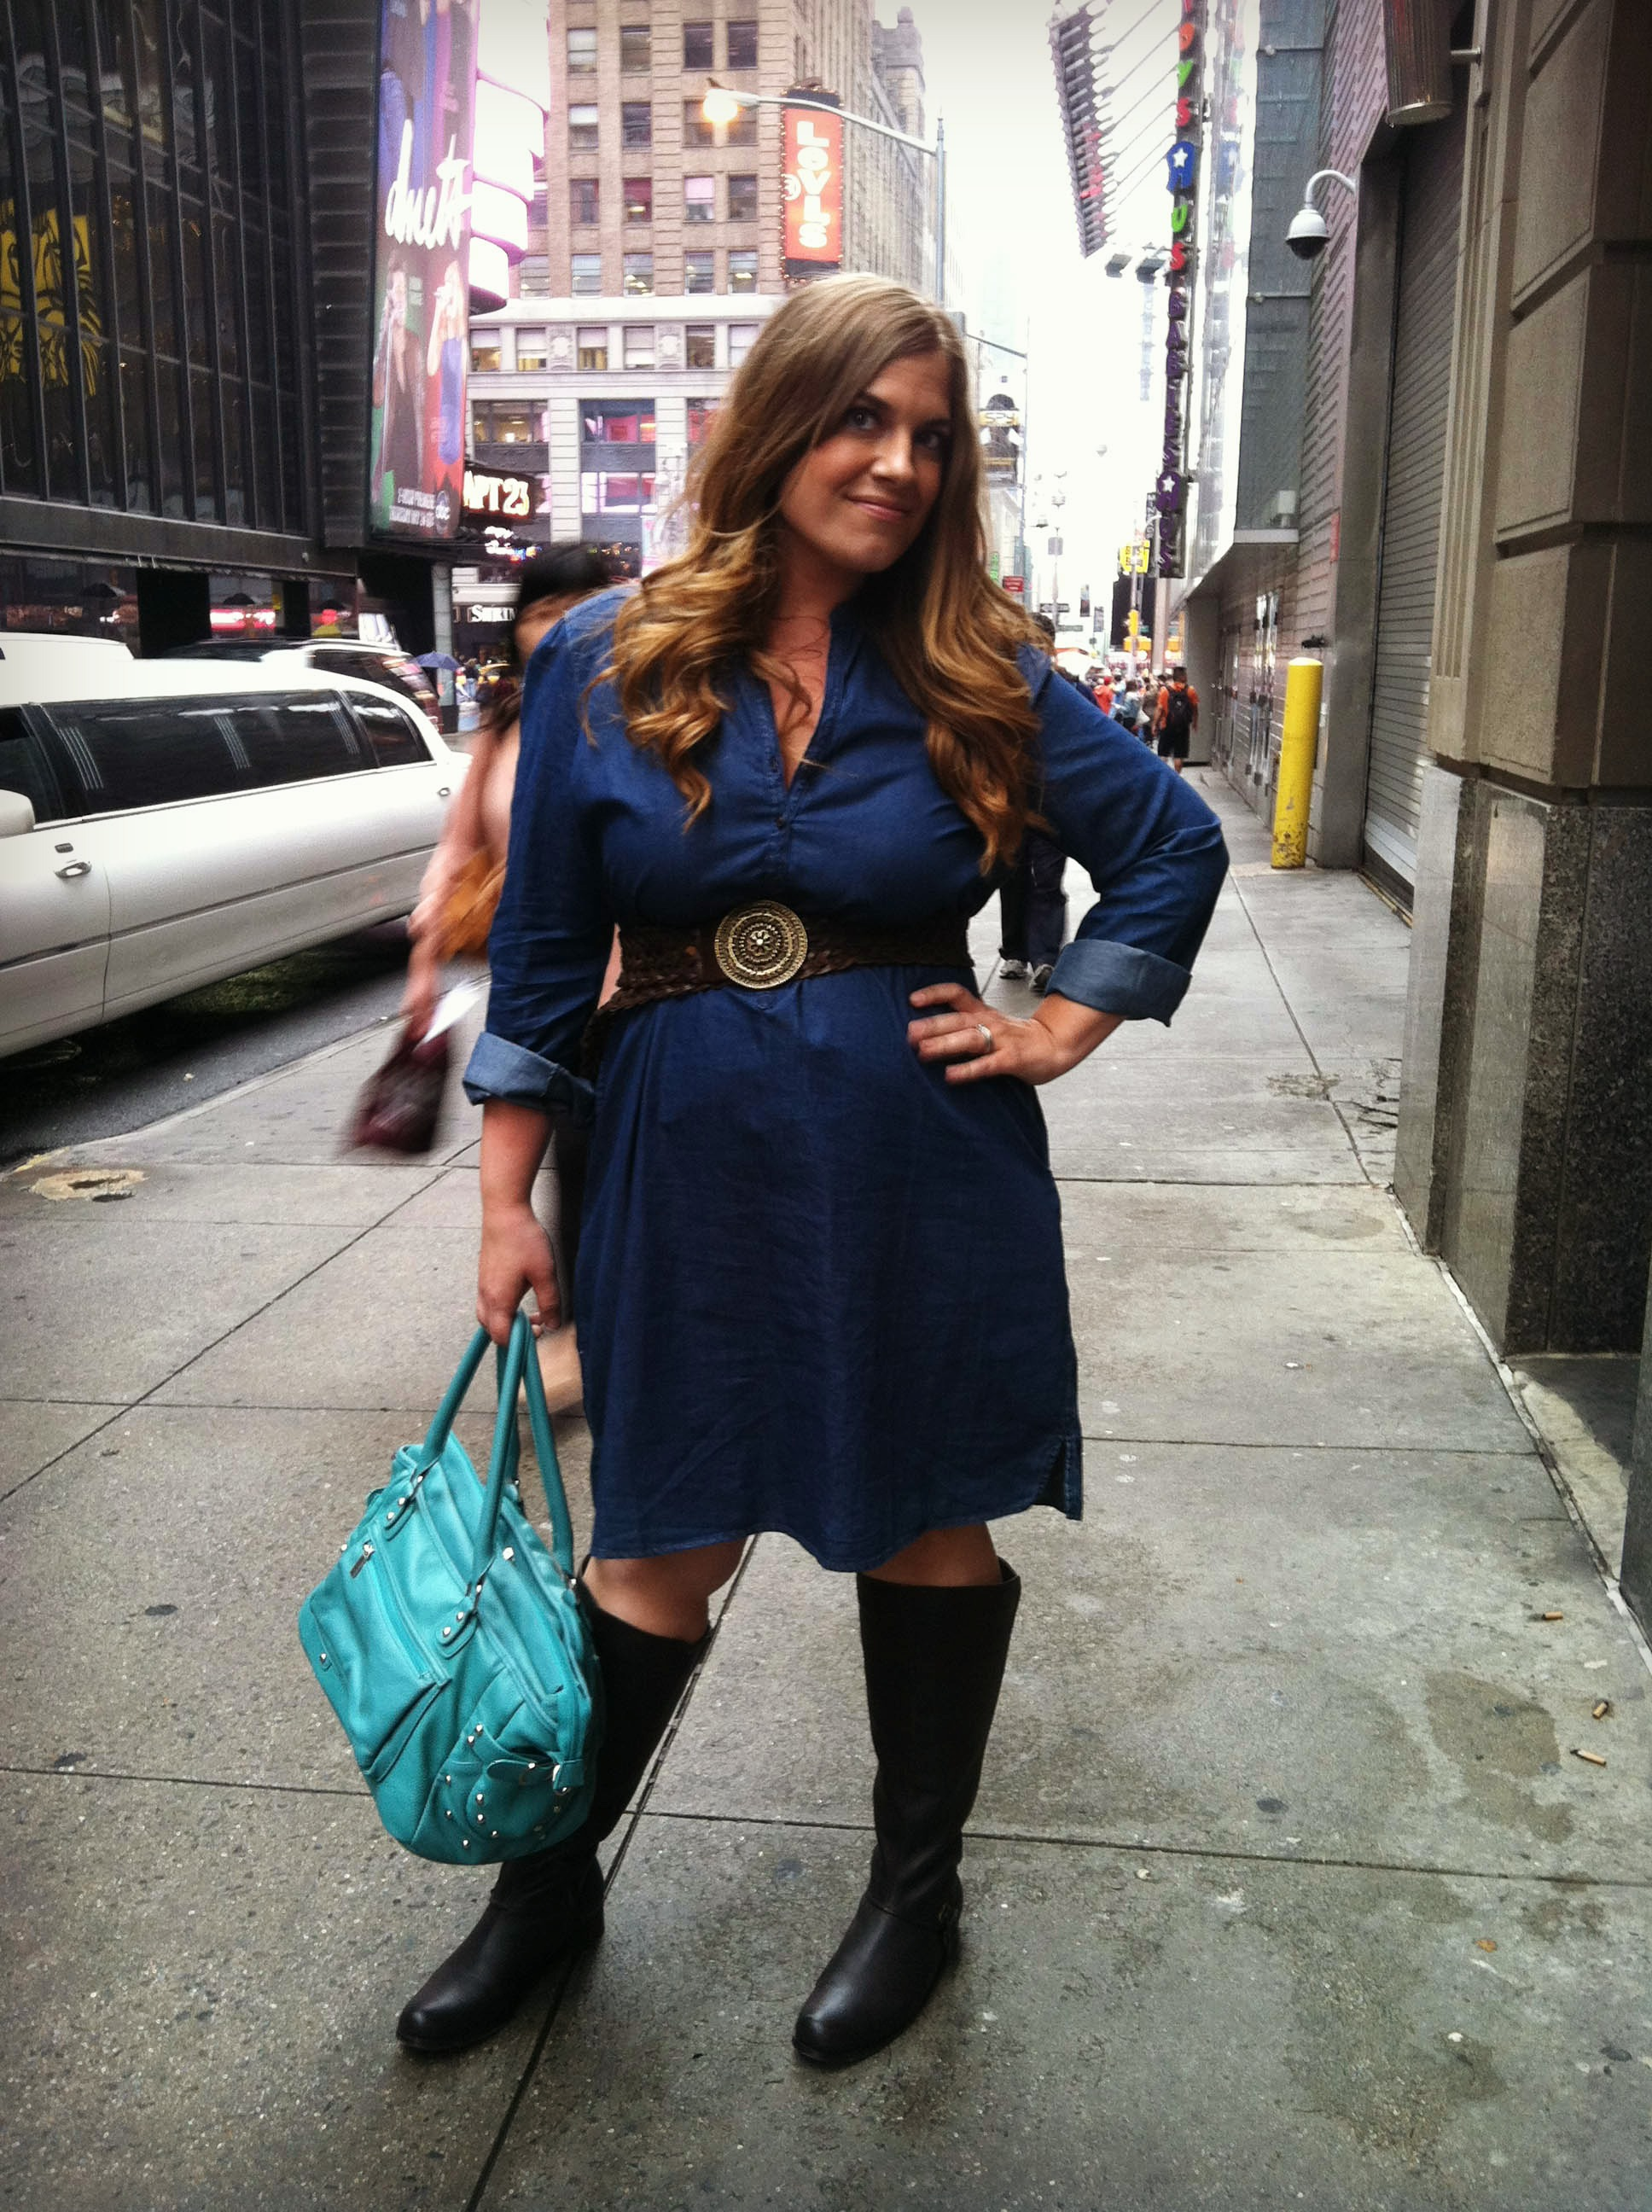 Denim dress with boots images